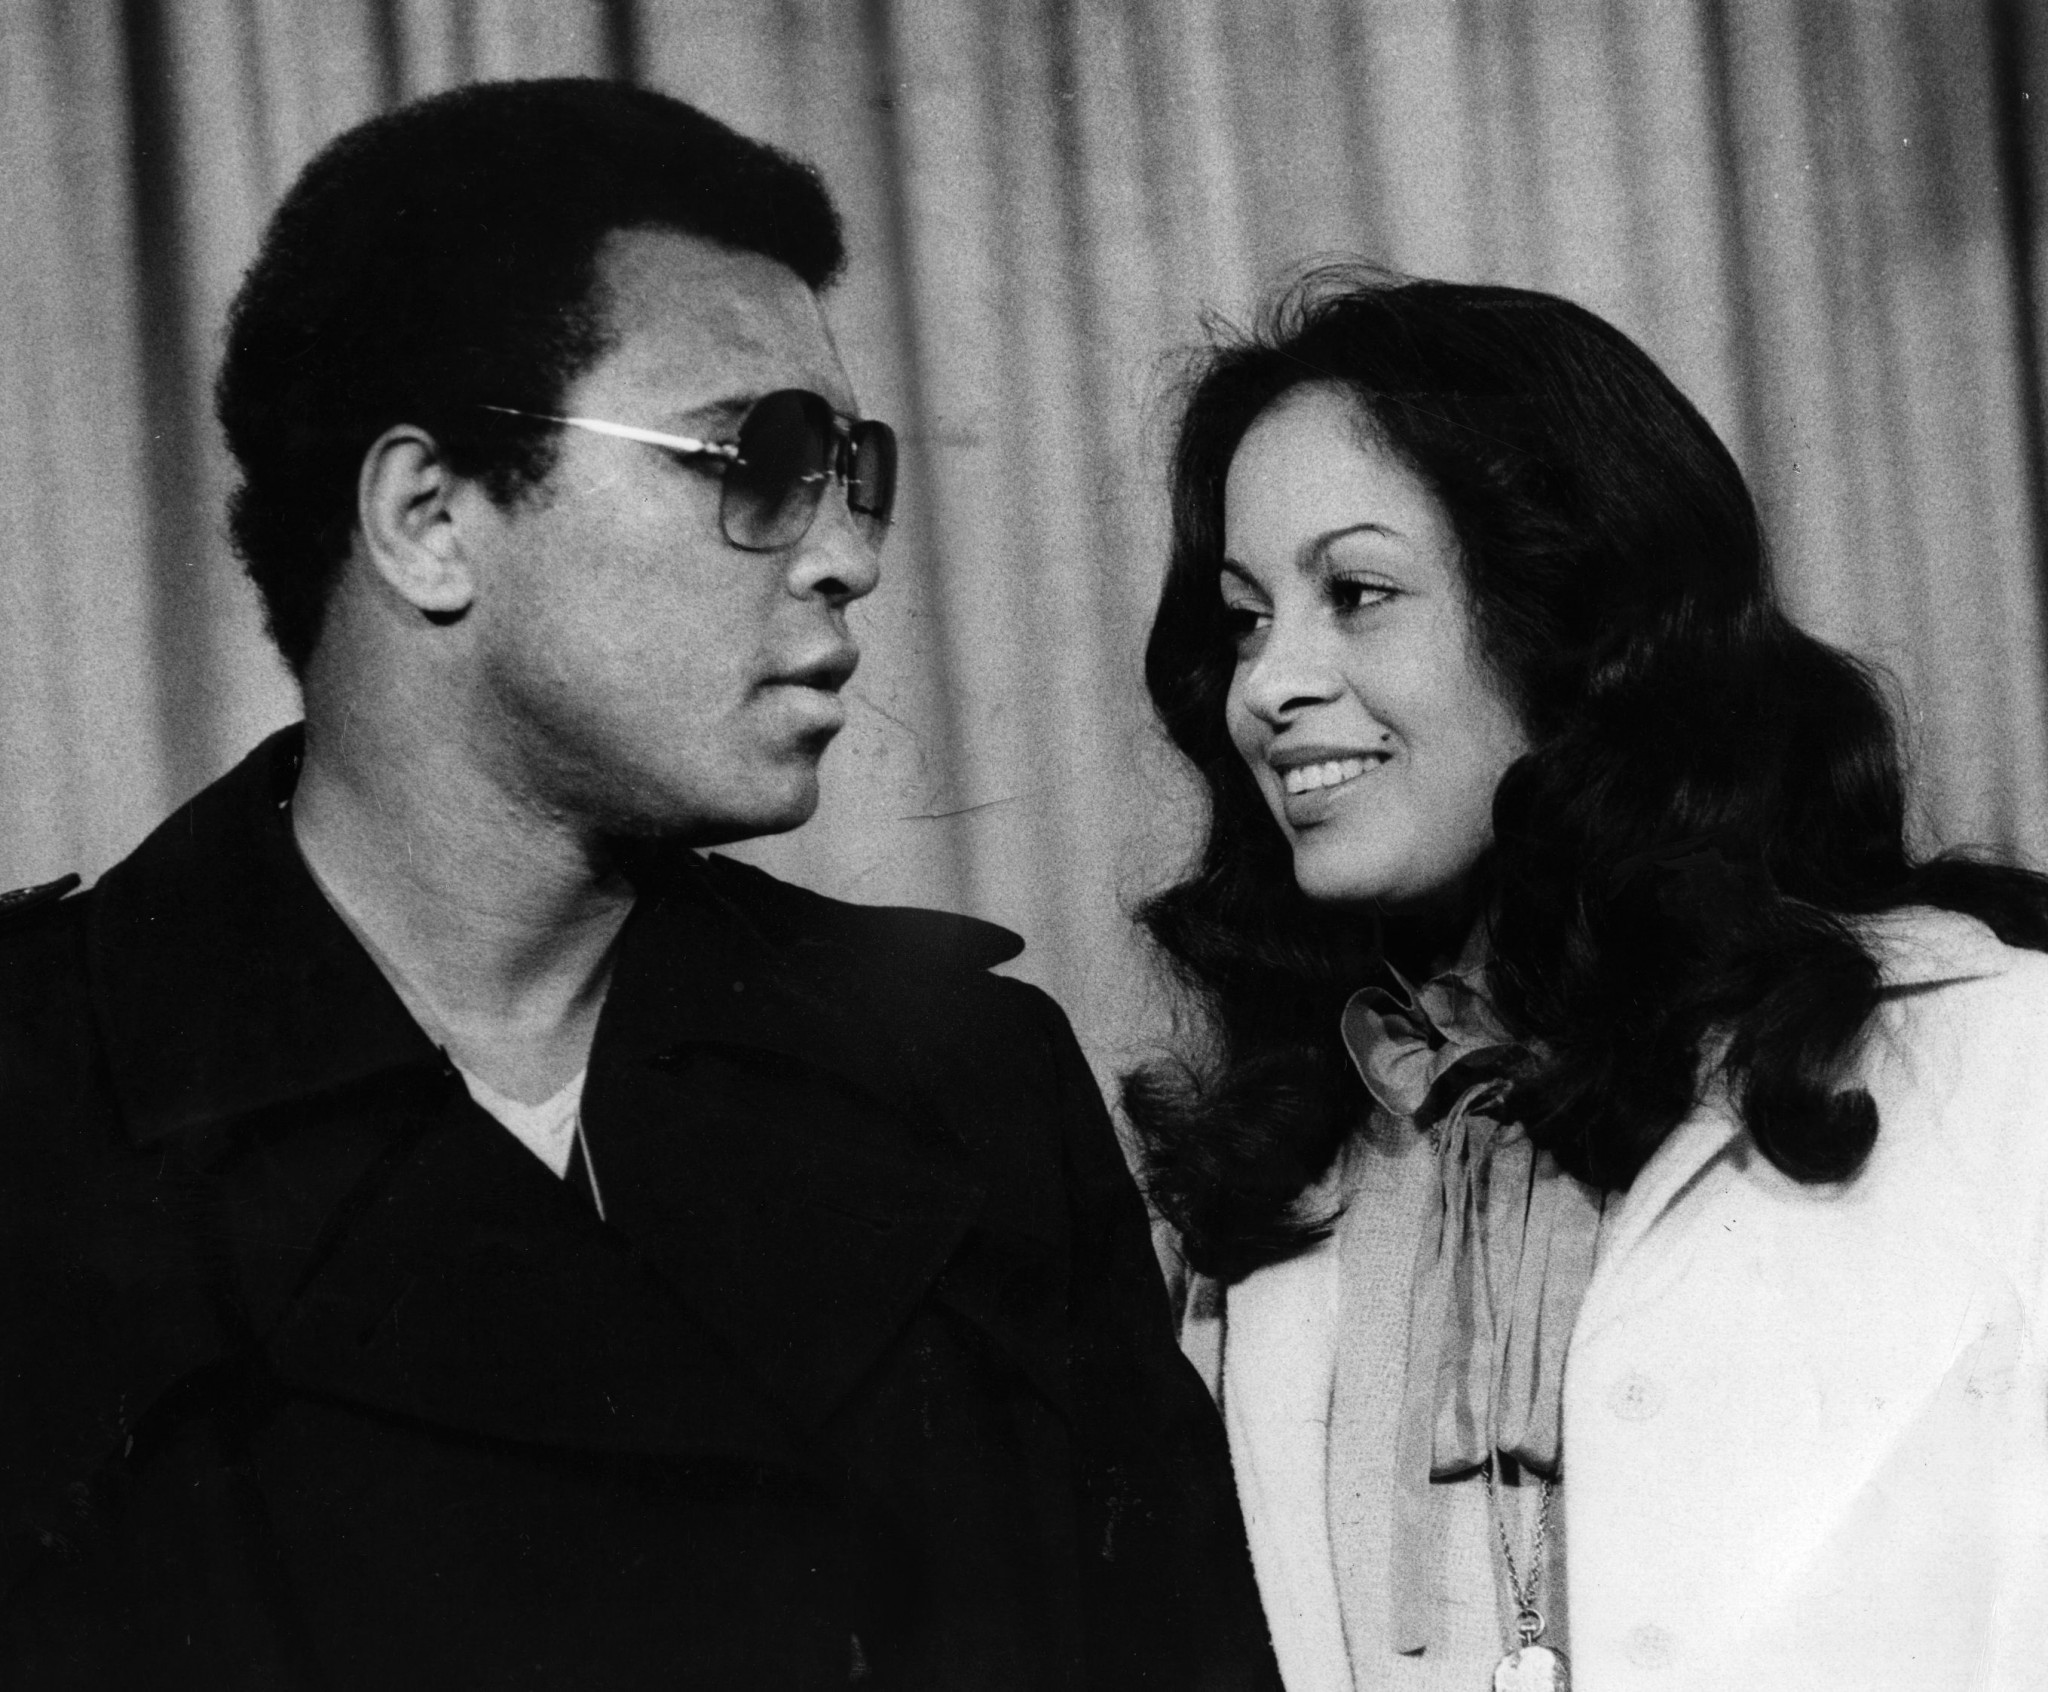 Muhammad Ali with his wife Veronica at Heathrow Airport ©Getty Images